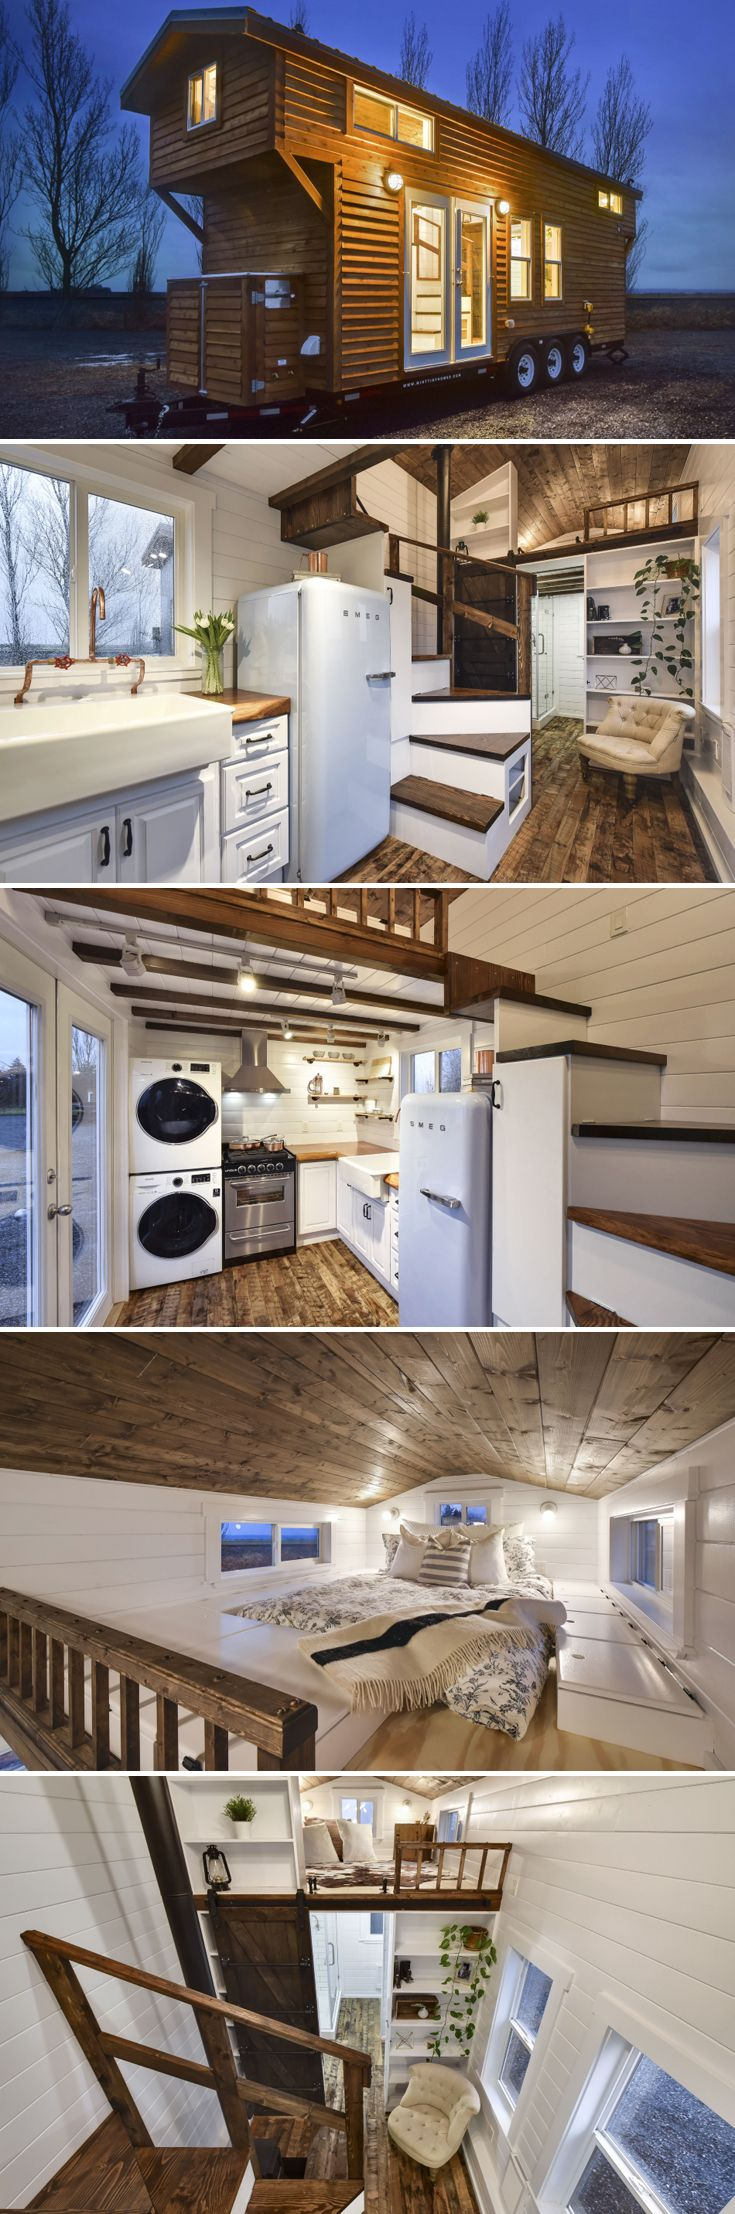 Best 25+ Modern Tiny House Ideas Only On Pinterest | Tiny Homes Interior,  Movable House And Mini Homes